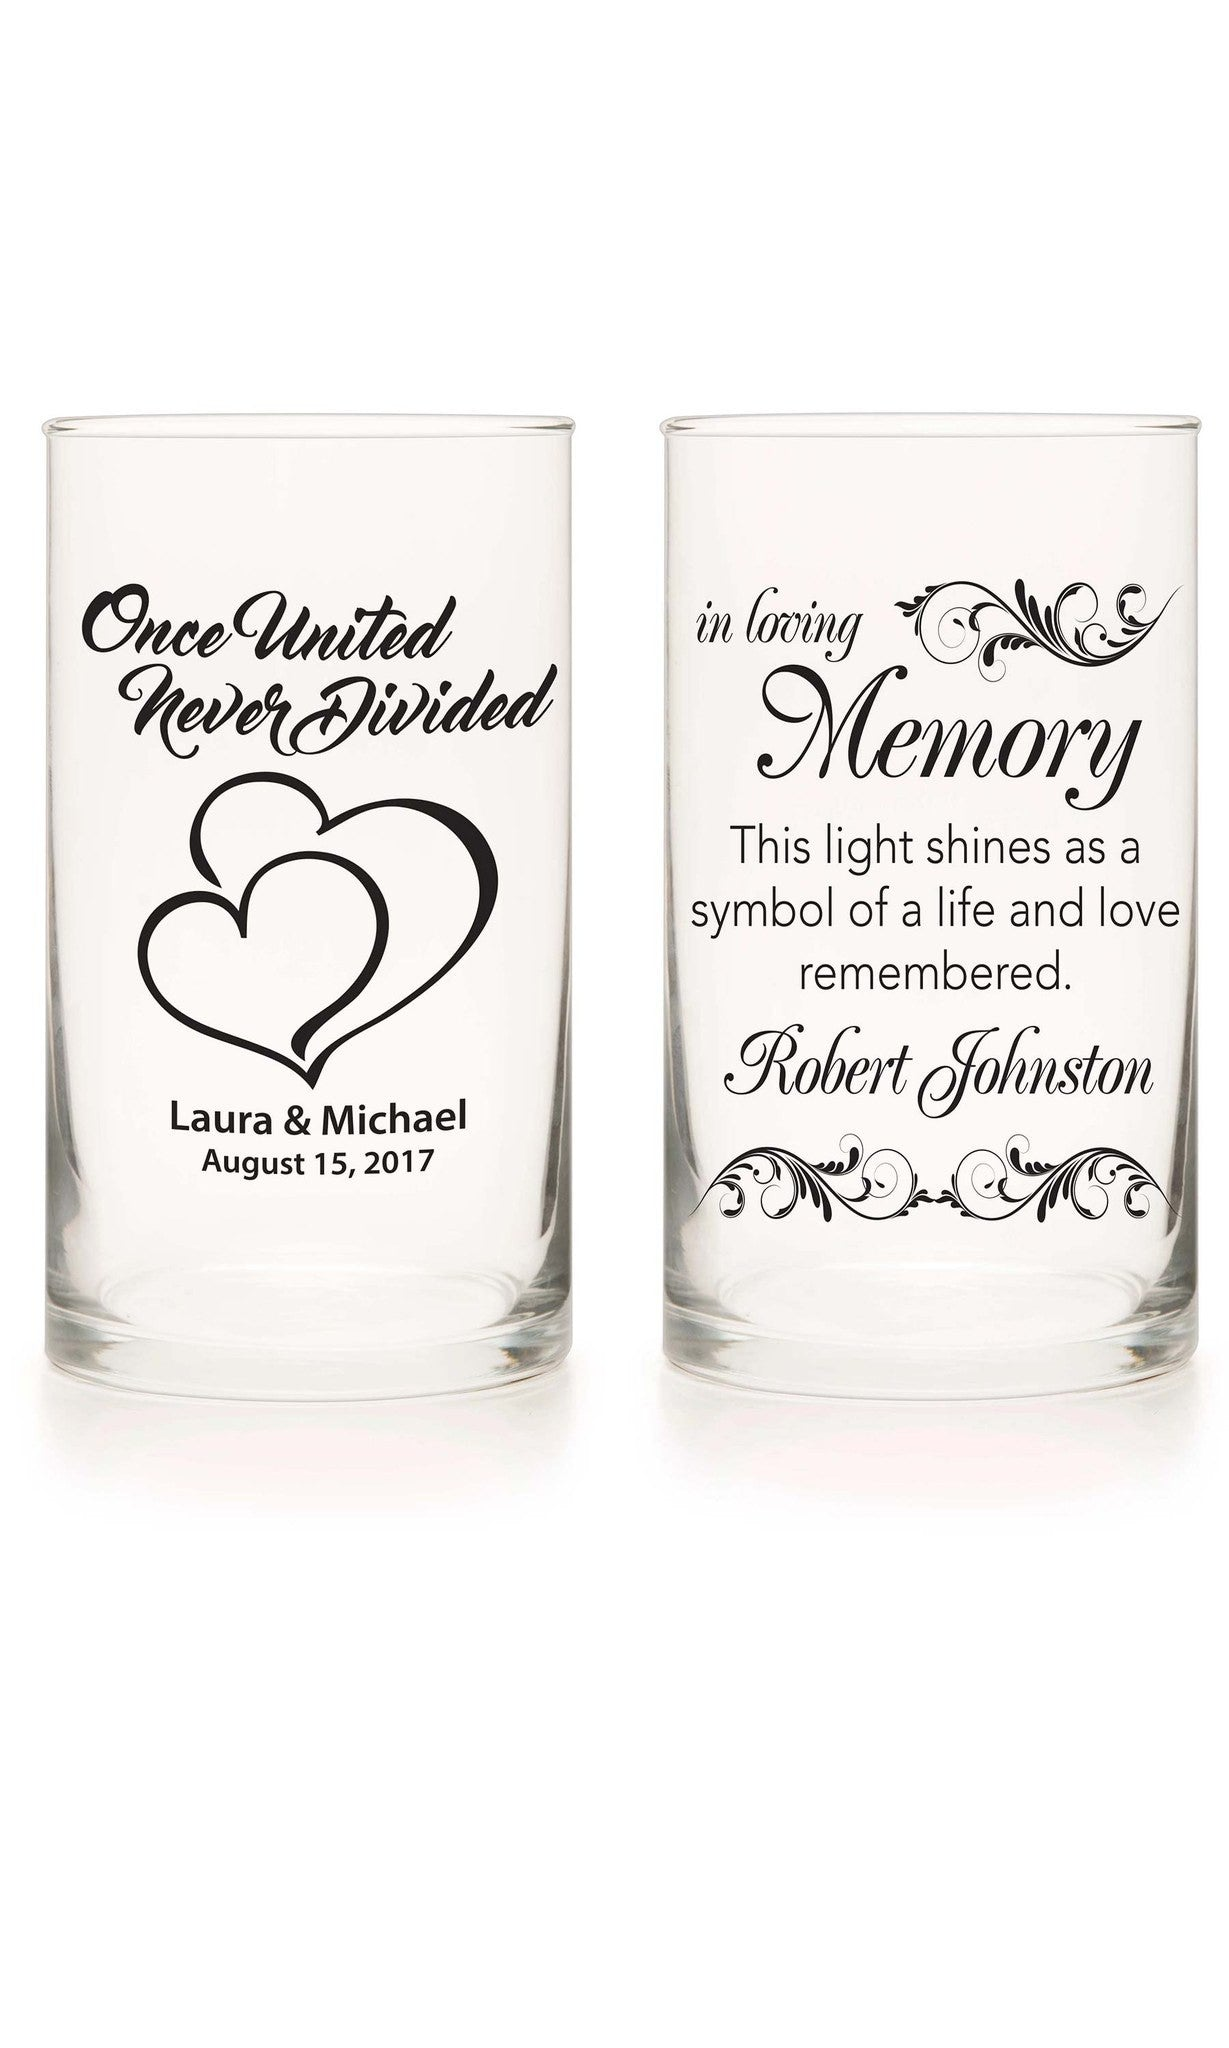 Unity Candle & Memorial Candle Set - Tux & Tie Black - Personalized Candle Holders - Wedding Candles - 2